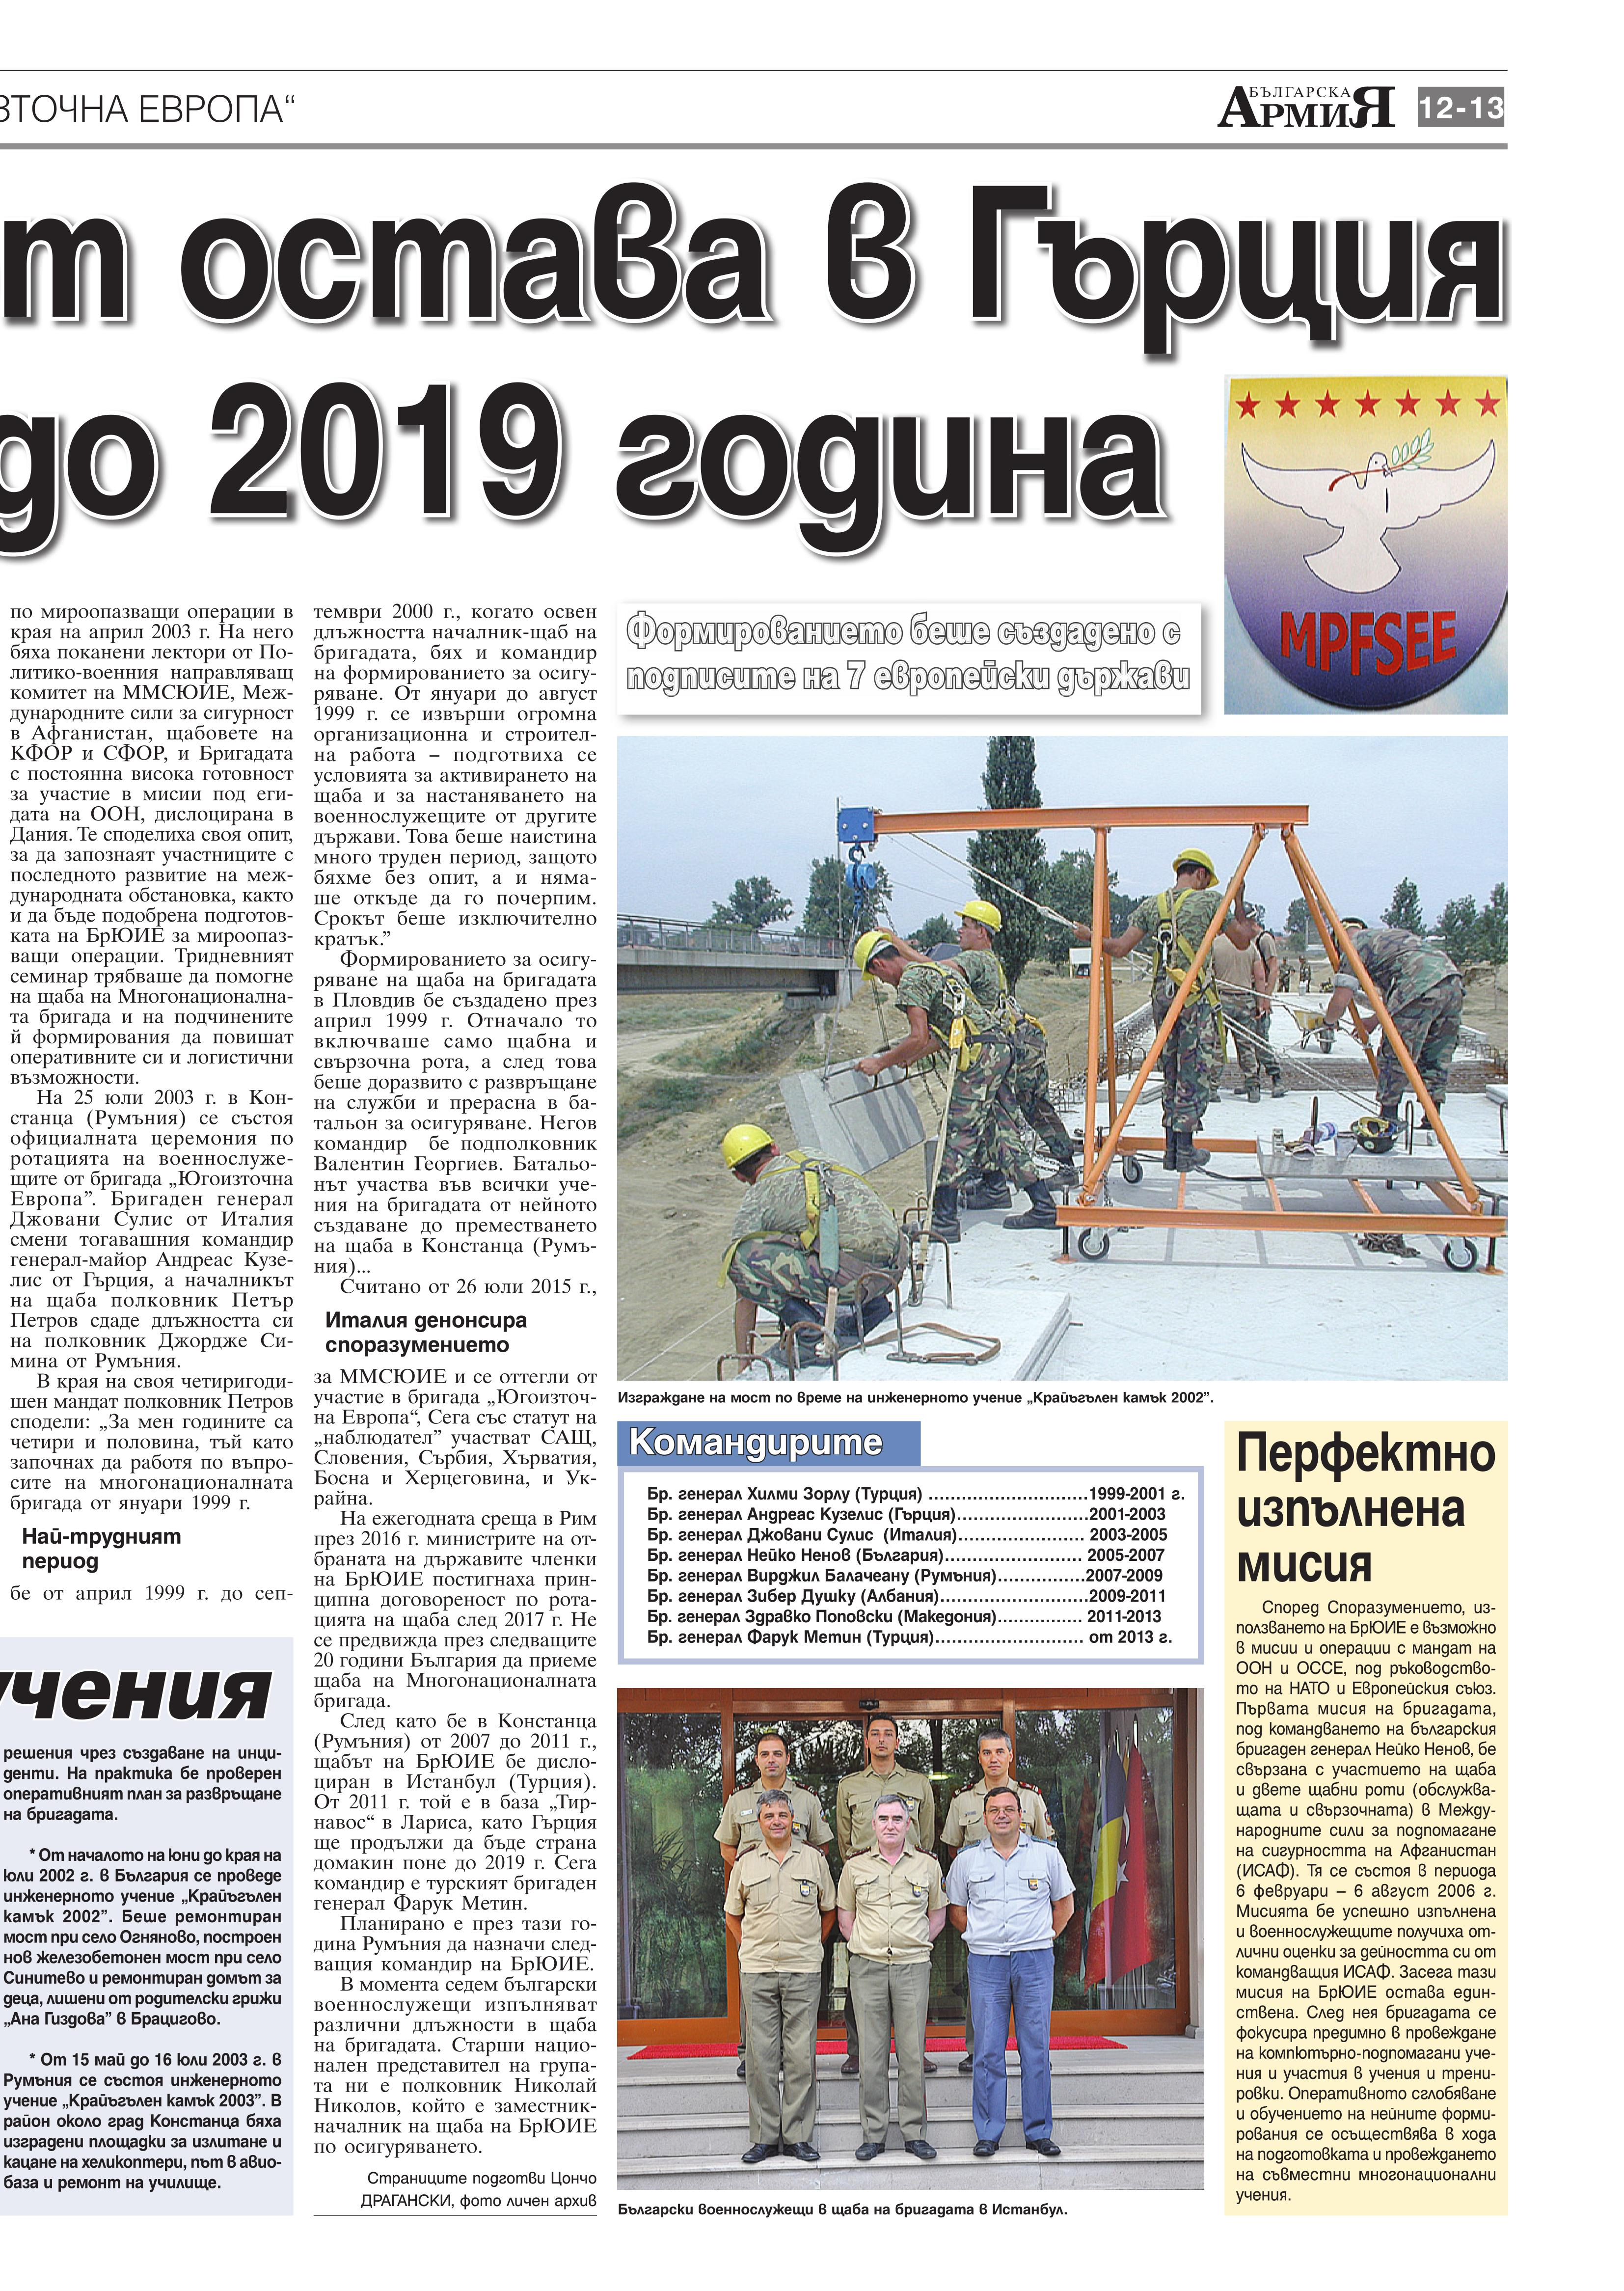 http://armymedia.bg/wp-content/uploads/2015/06/13.page1_-19.jpg